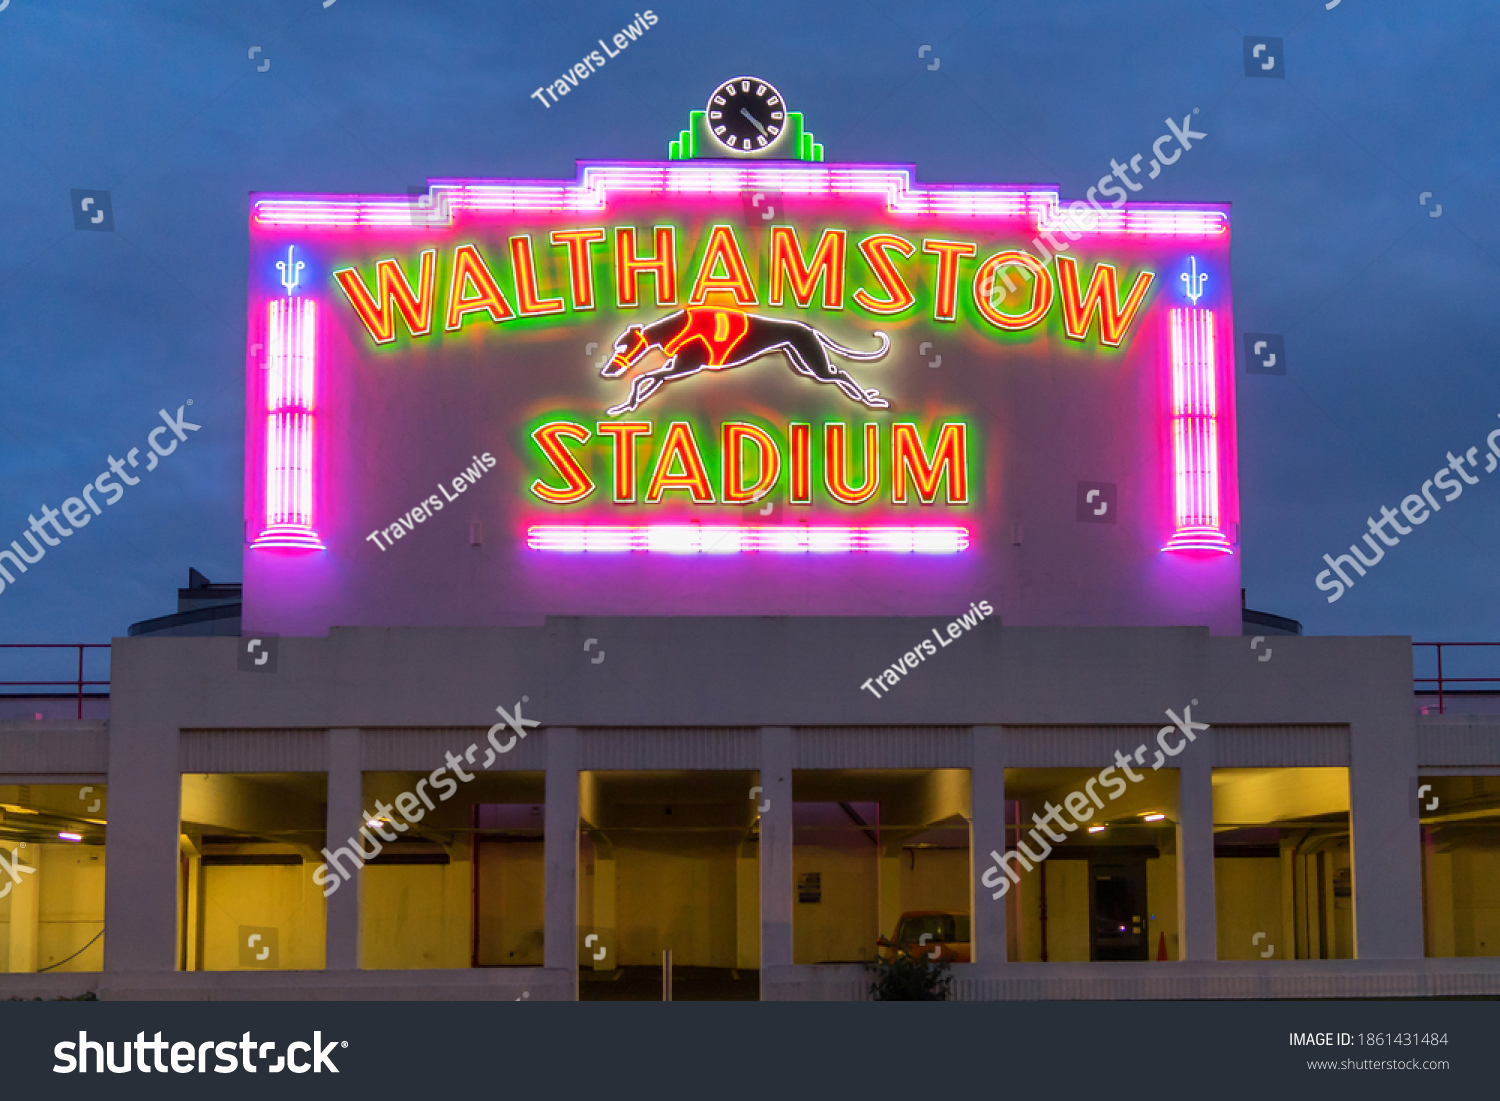 Walthamstow Dog Stadium at night with the neon lights glowing. Close up front view. London - 25th November 2020